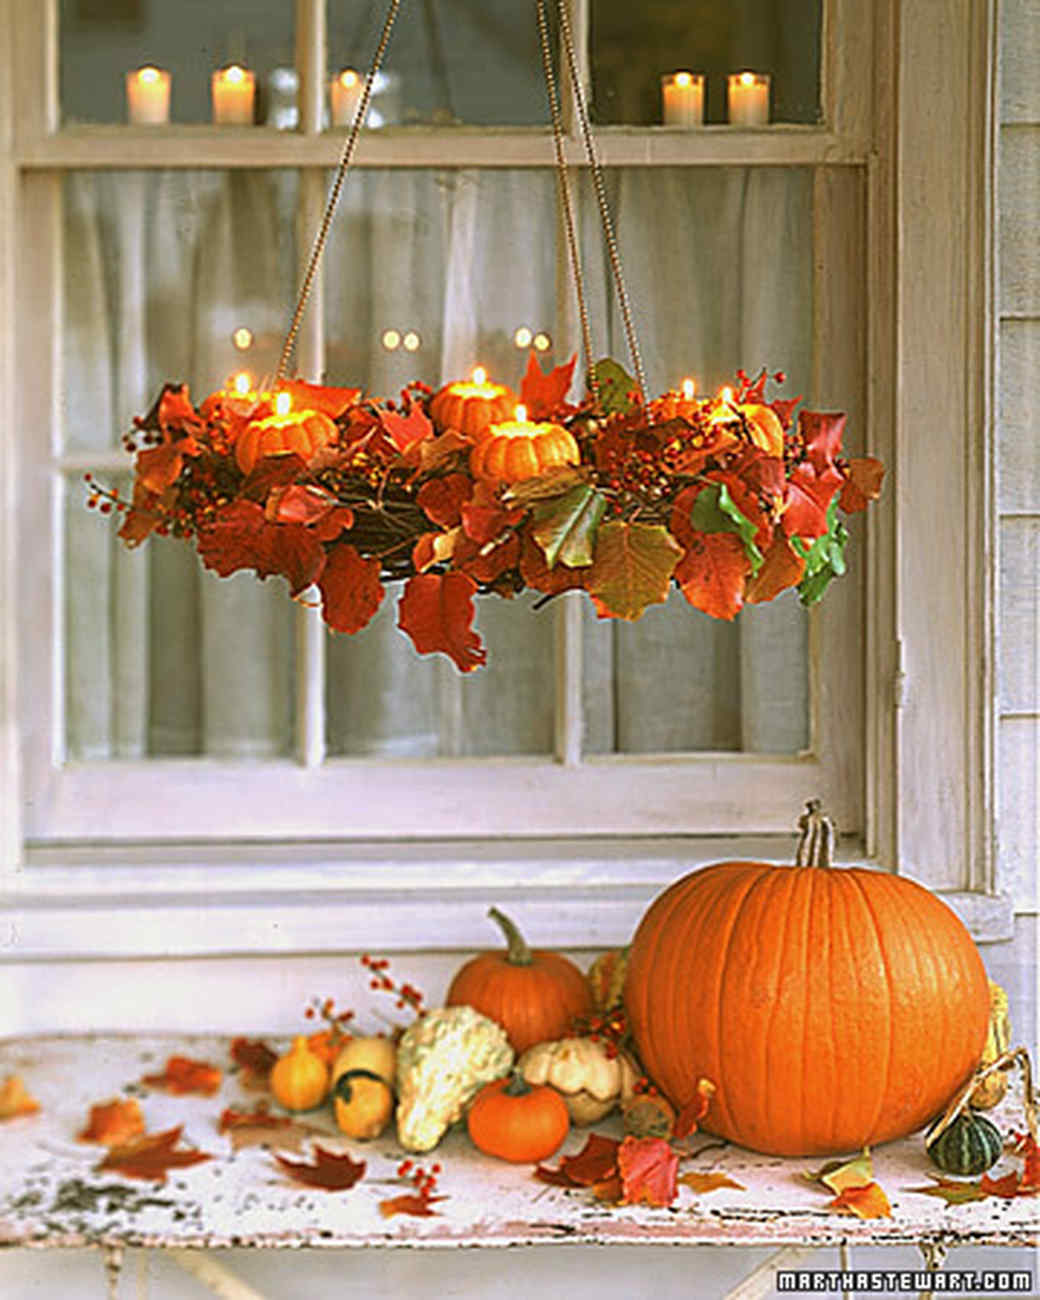 Fall harvest decorating martha stewart - Pumpkin decorating ideas autumnal decor ...